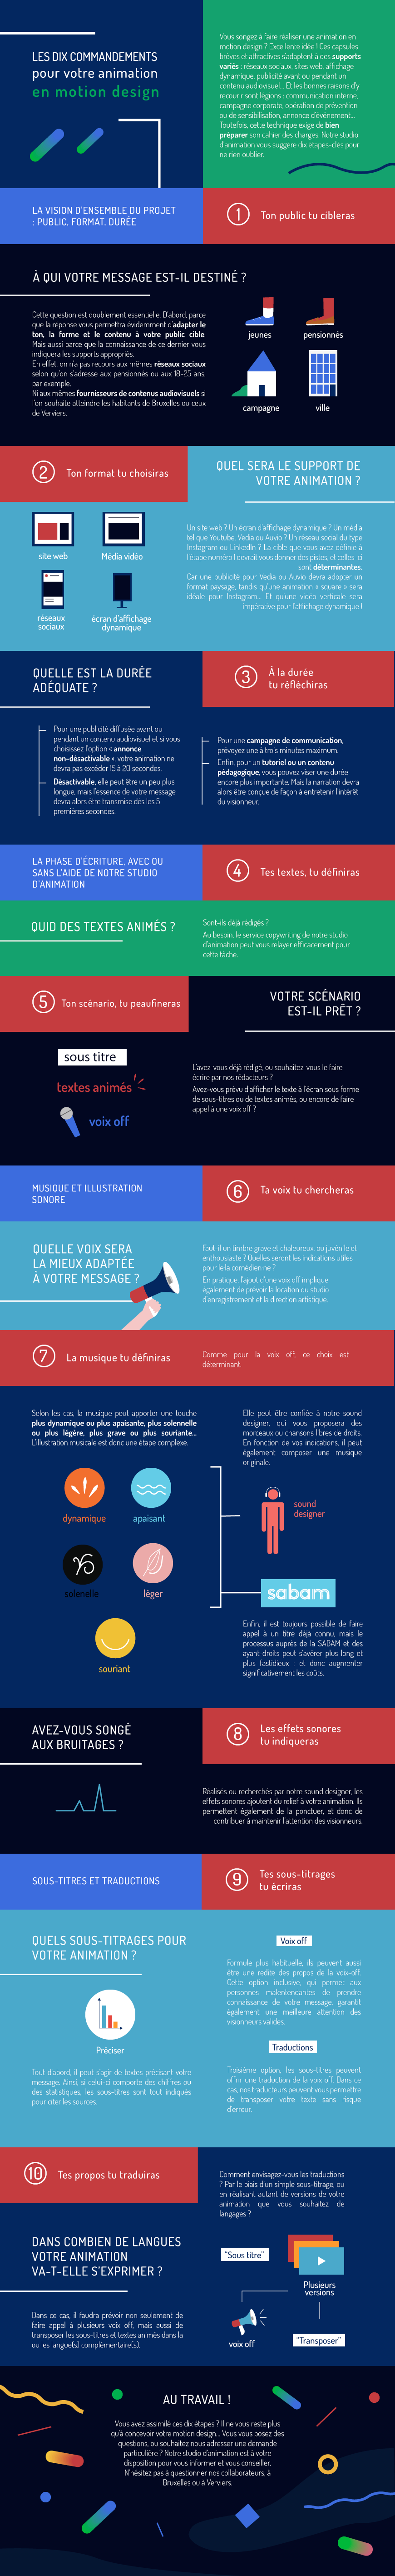 Motion Design : charte - infographie